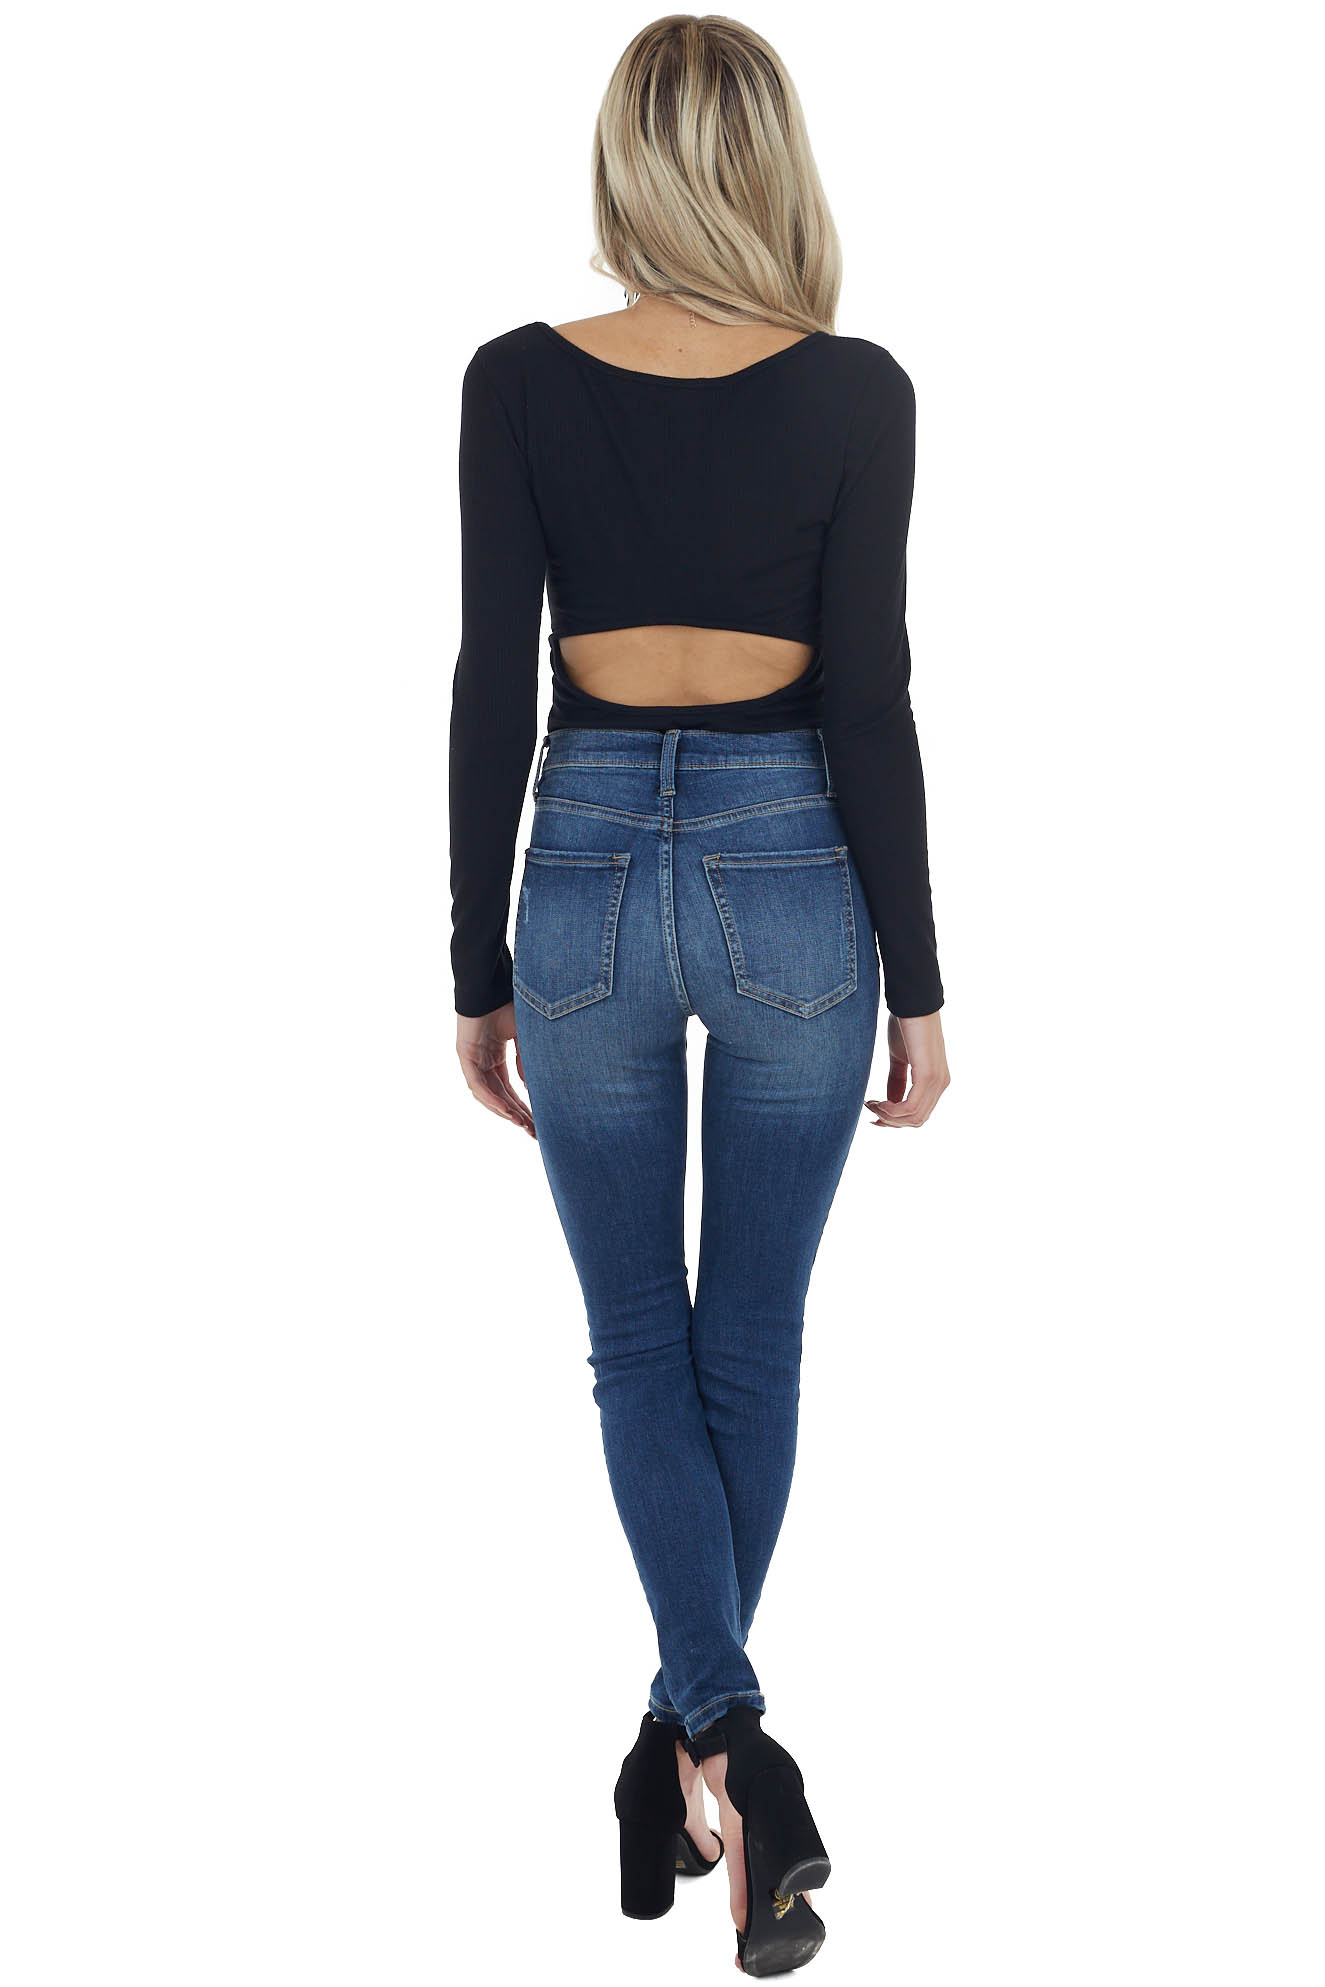 Black Ribbed Long Sleeve Knit Bodysuit with Open Back